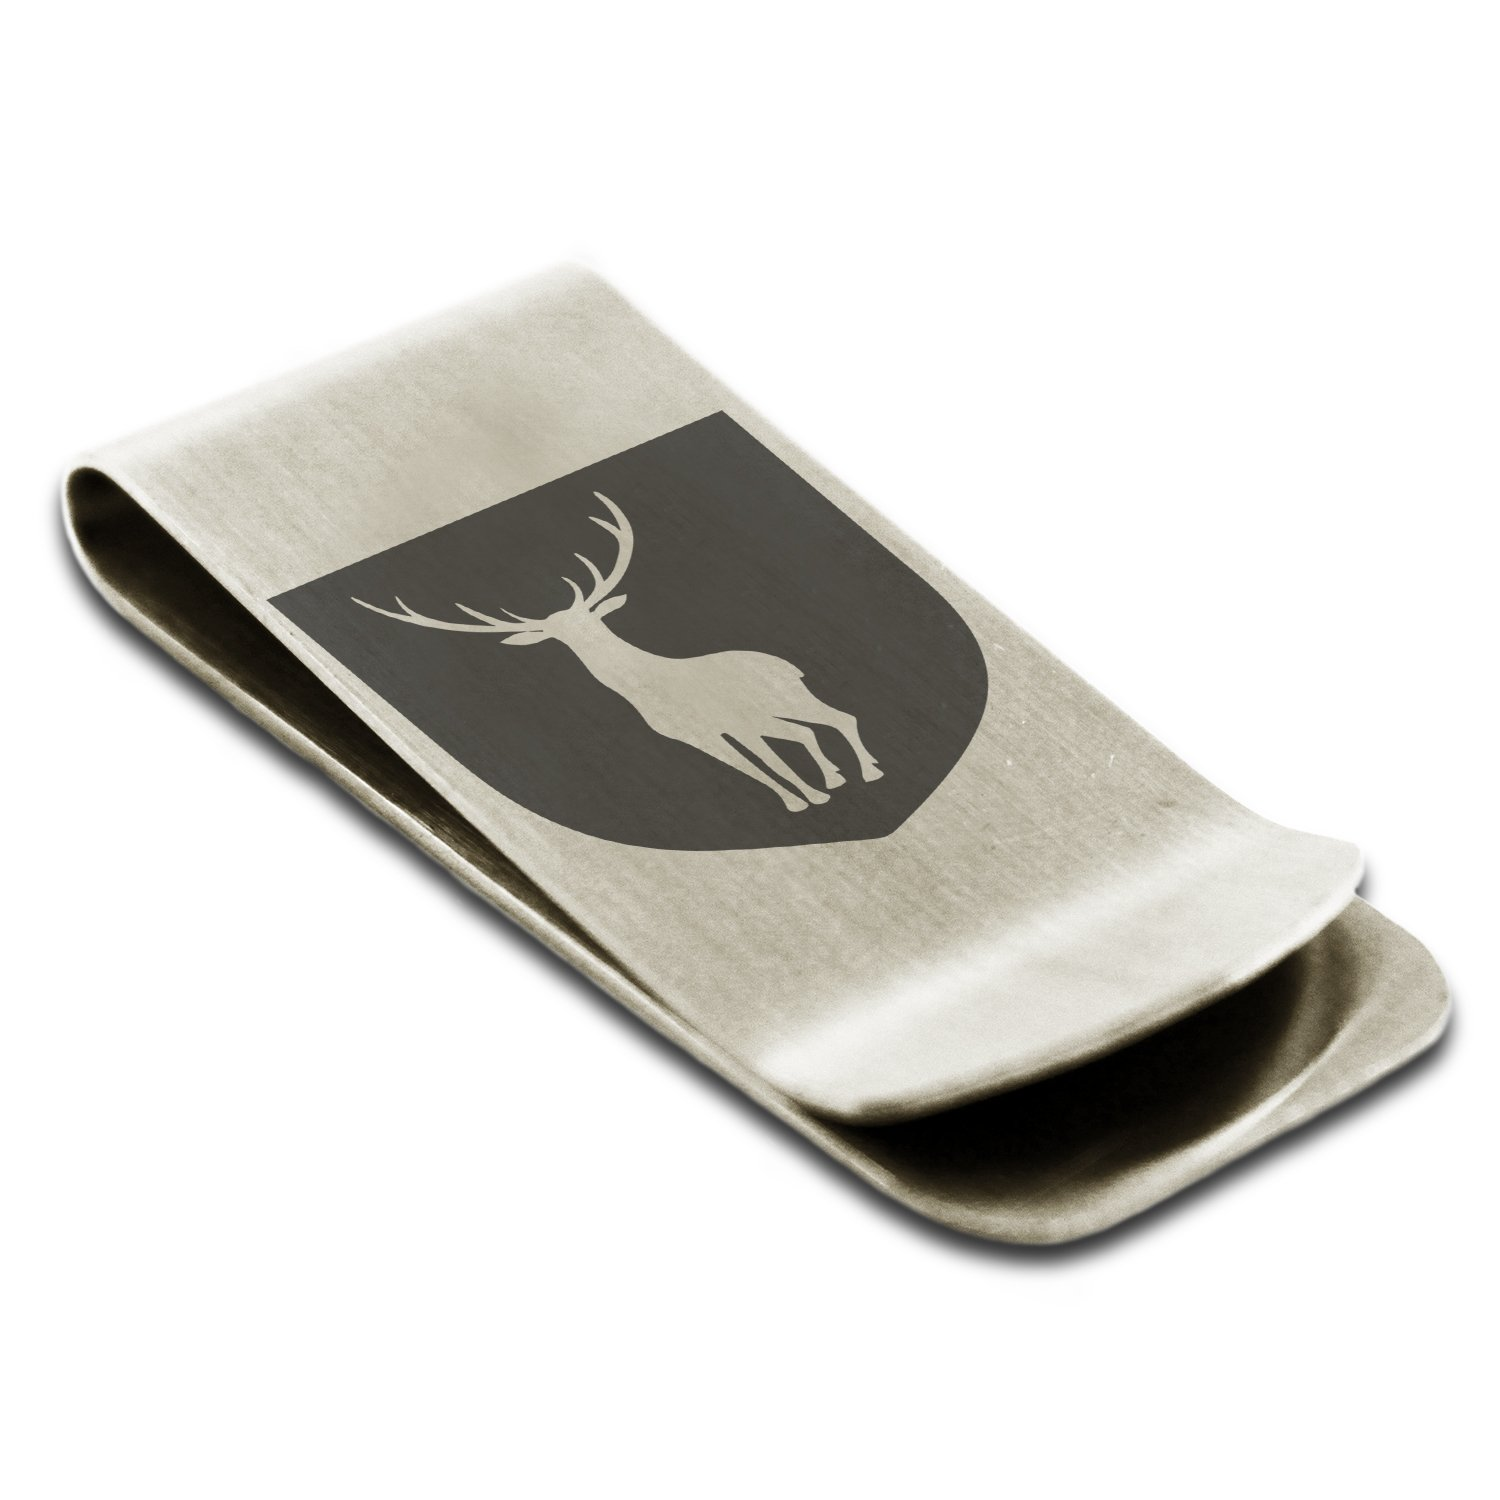 Stainless Steel Stag Purity Coat of Arms Shield Symbol Engraved Money Clip Credit Card Holder by Tioneer (Image #1)